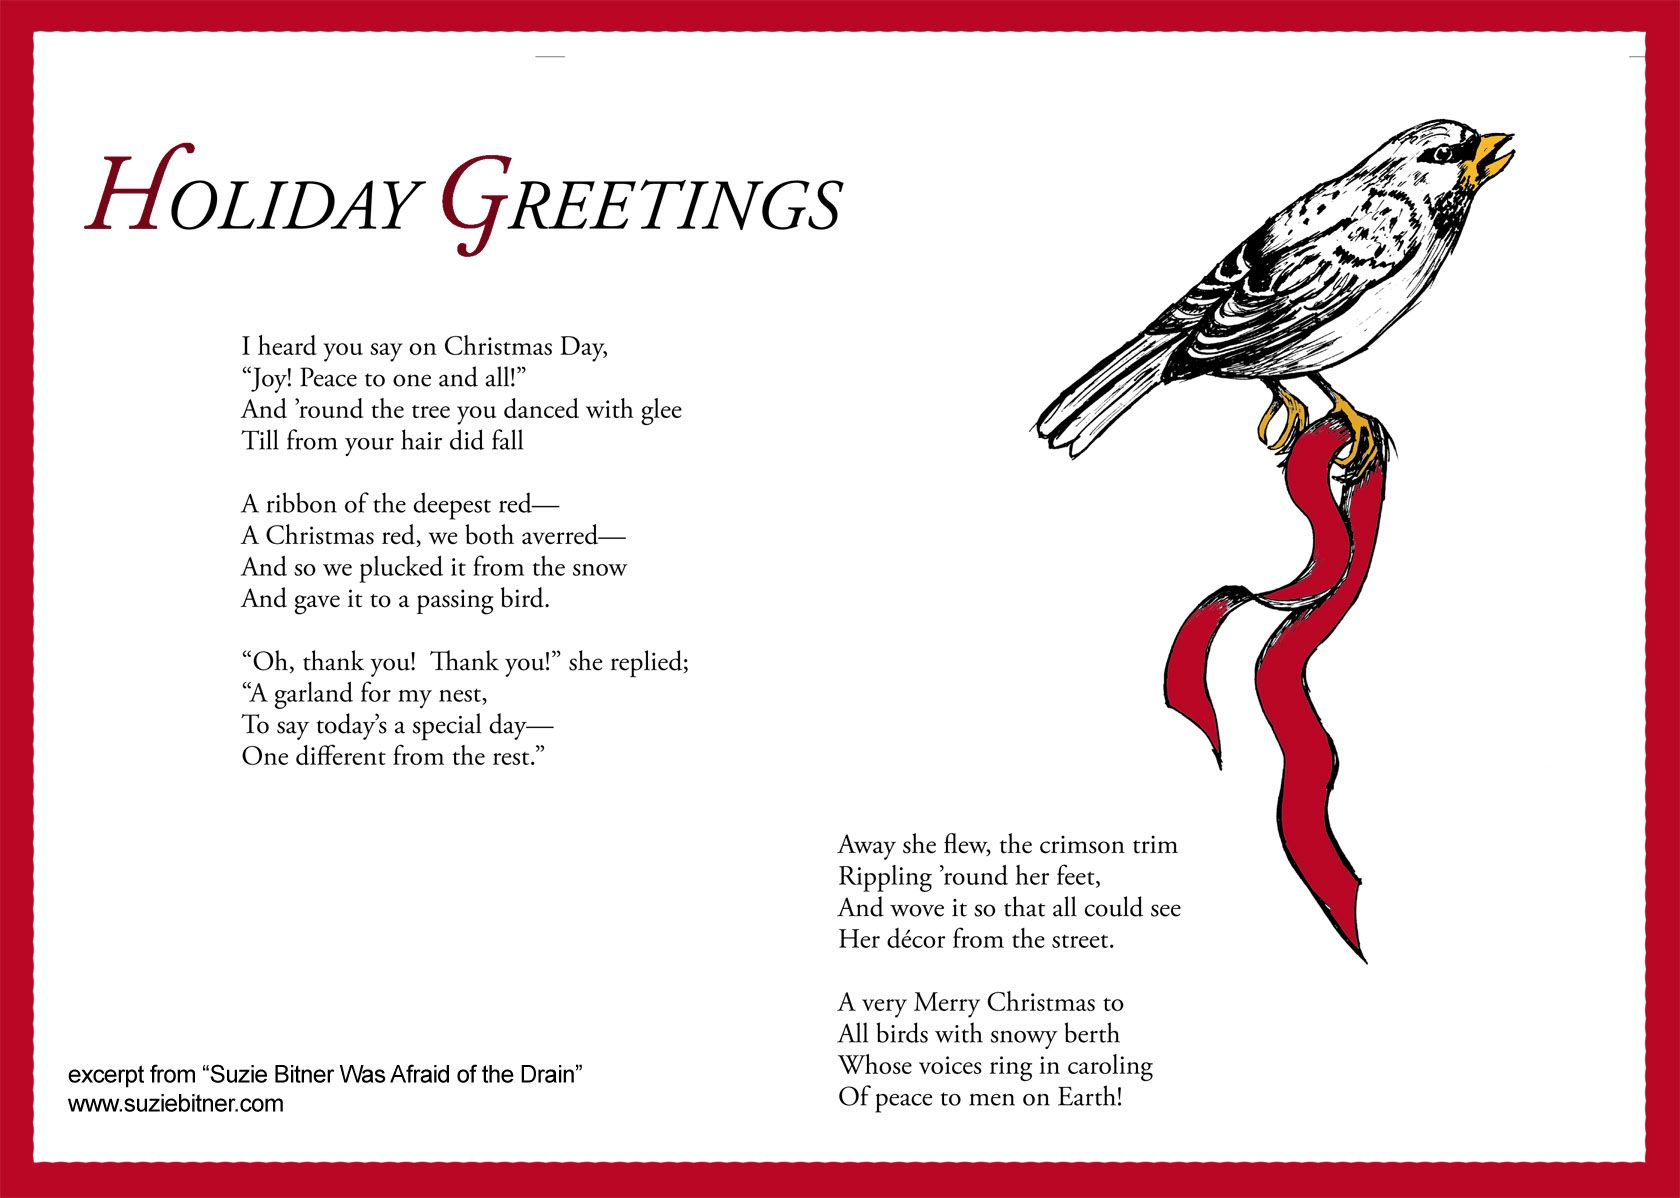 Holiday greetings poem childrens poem for winter great for school holiday greetings poem childrens poem for winter great for school excerpt from suzie bitner was afraid of the drain m4hsunfo